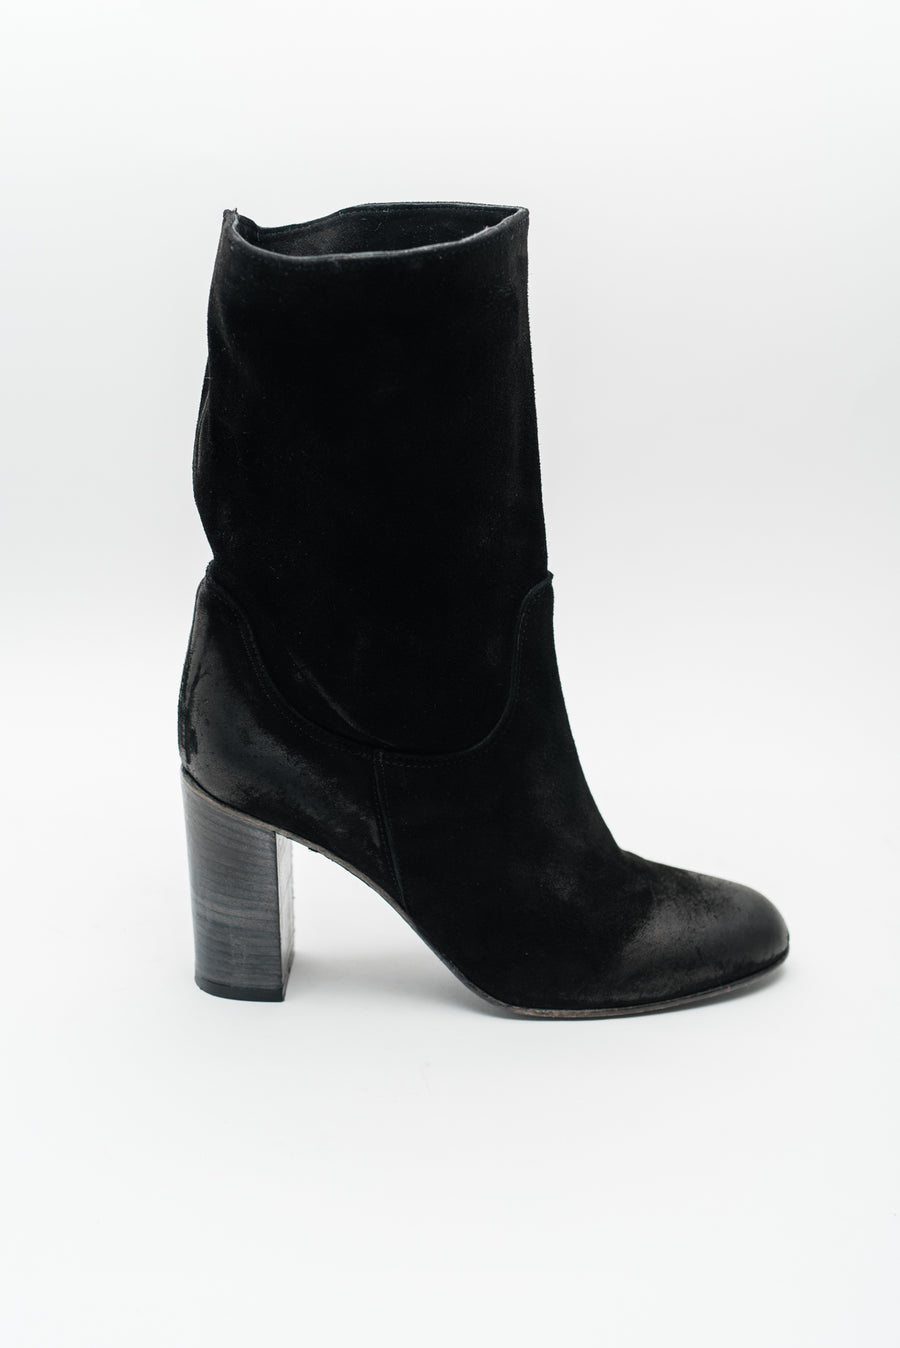 Dakota Boots - Black